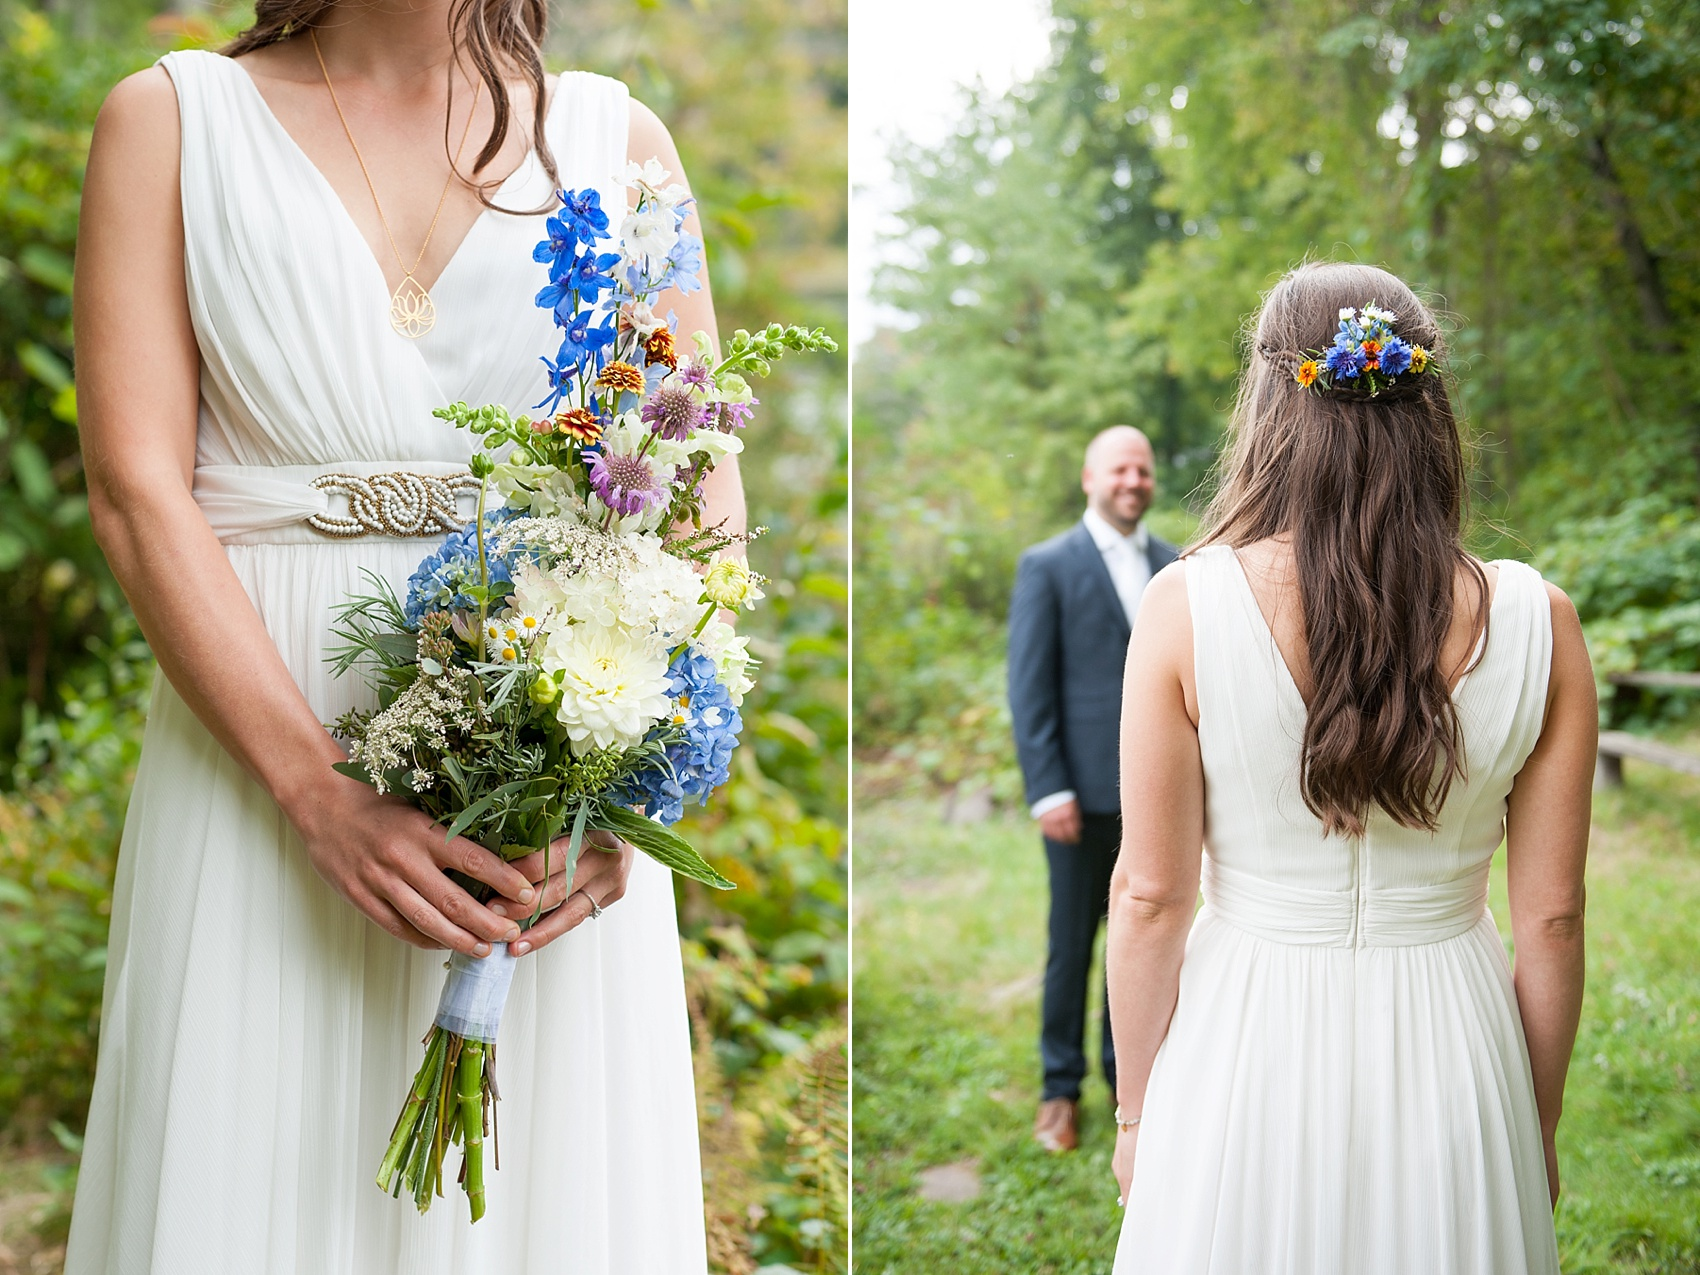 Wildflower bouquet and bridal hair comb for a rustic Massachusetts Berkshires wedding at Camp Wa Wa Segowea. Photos by Mikkel Paige Photography, destination wedding photographer.